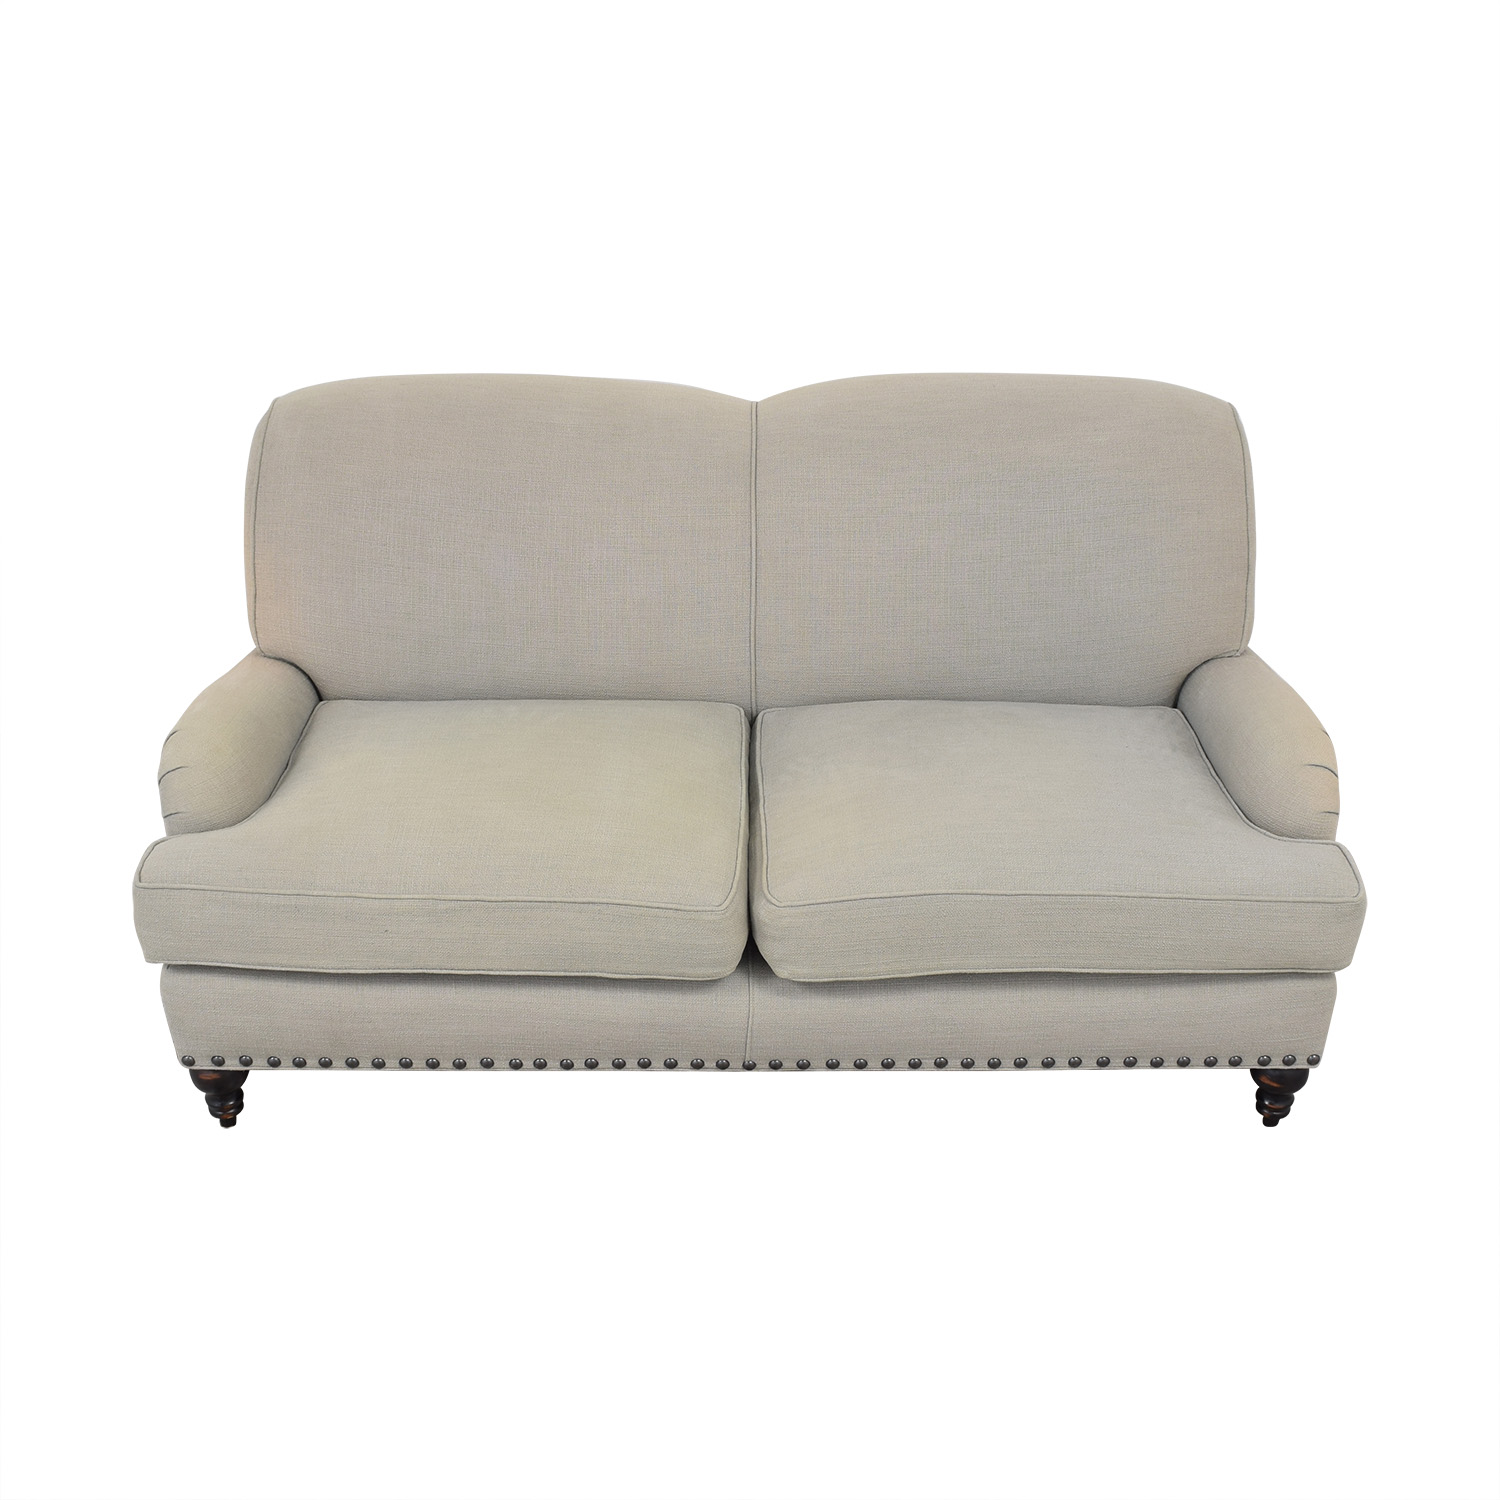 buy Arhaus Outerbanks Sofa Arhaus